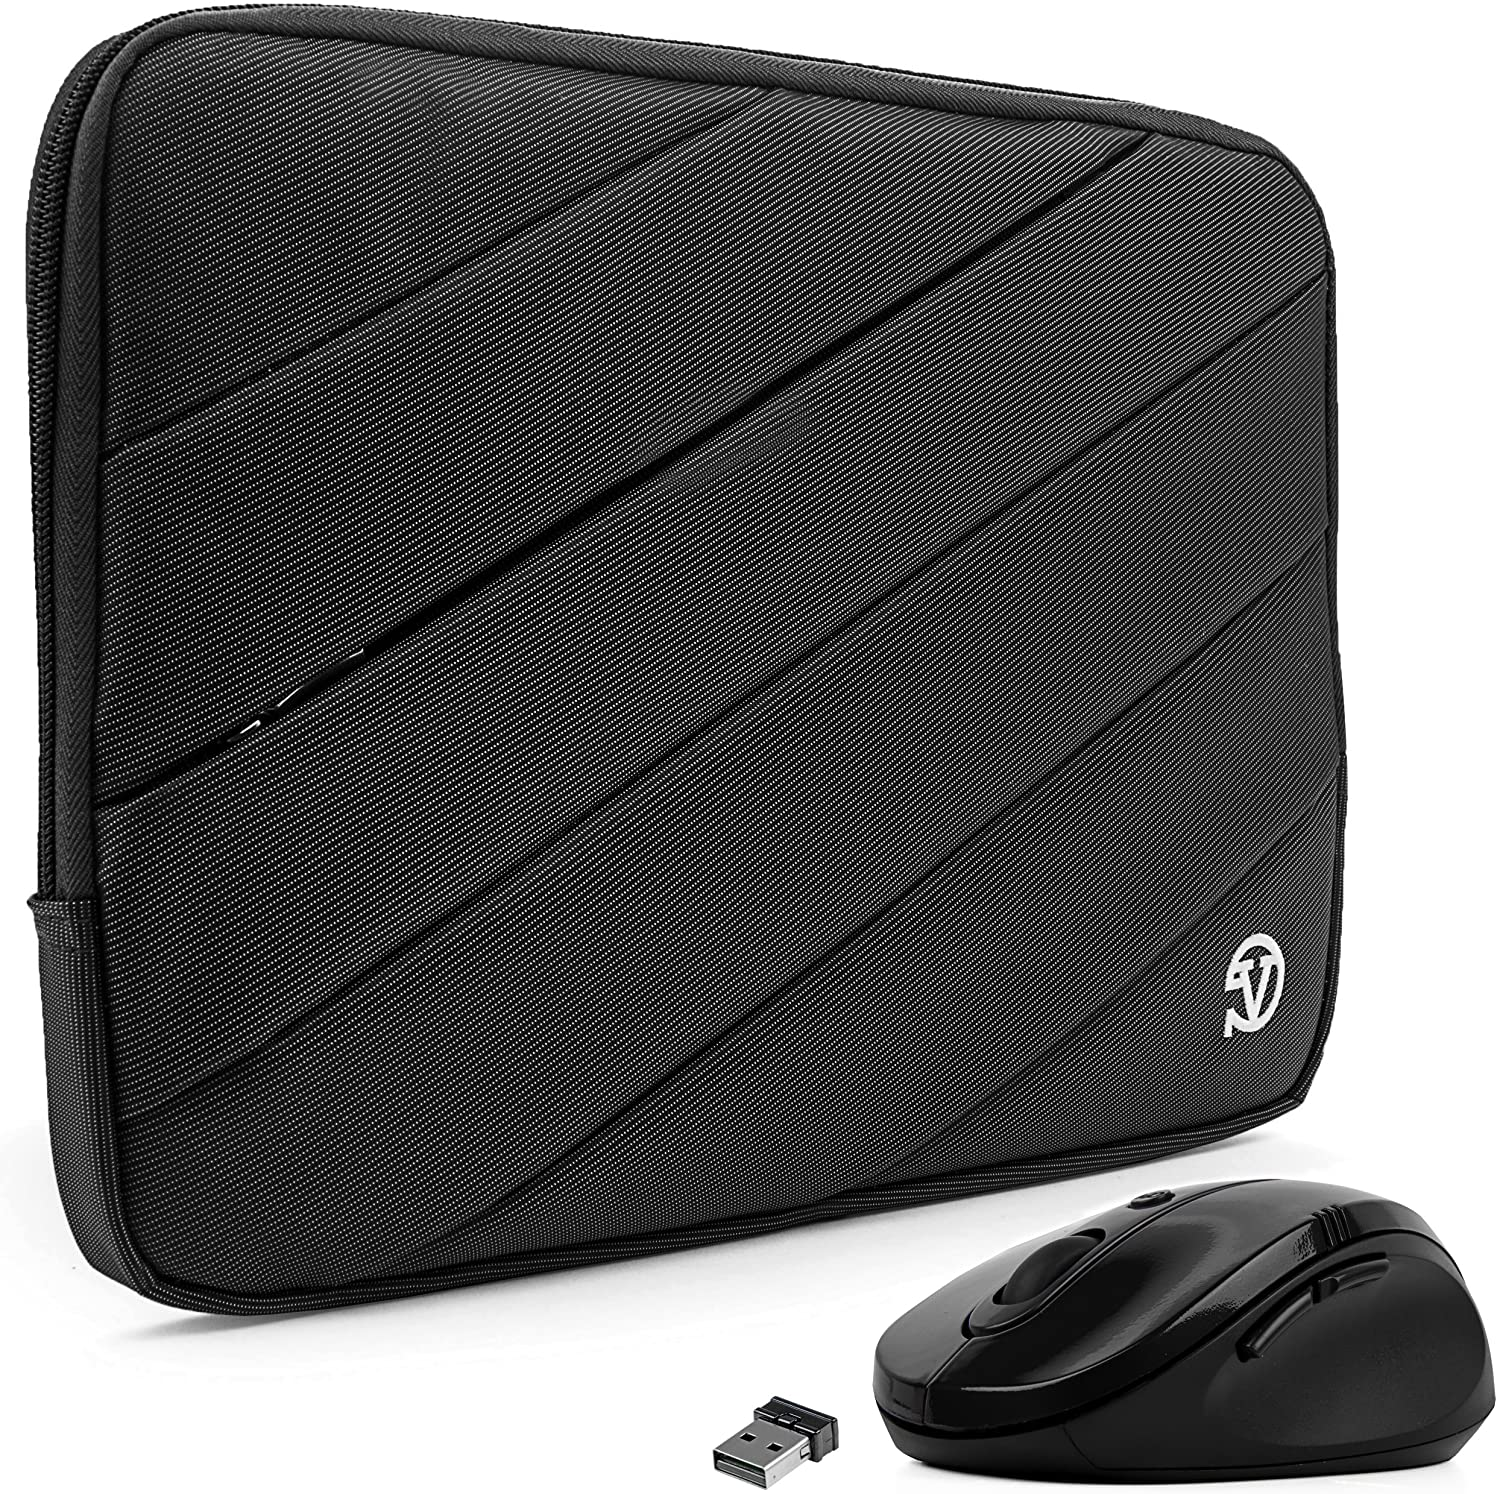 Protective Travel Carrying Case Laptop Sleeve with Mouse (Black, 11.6 to 12.5 inch) for Fujitsu LifeBook, Stylistic Tablet PC